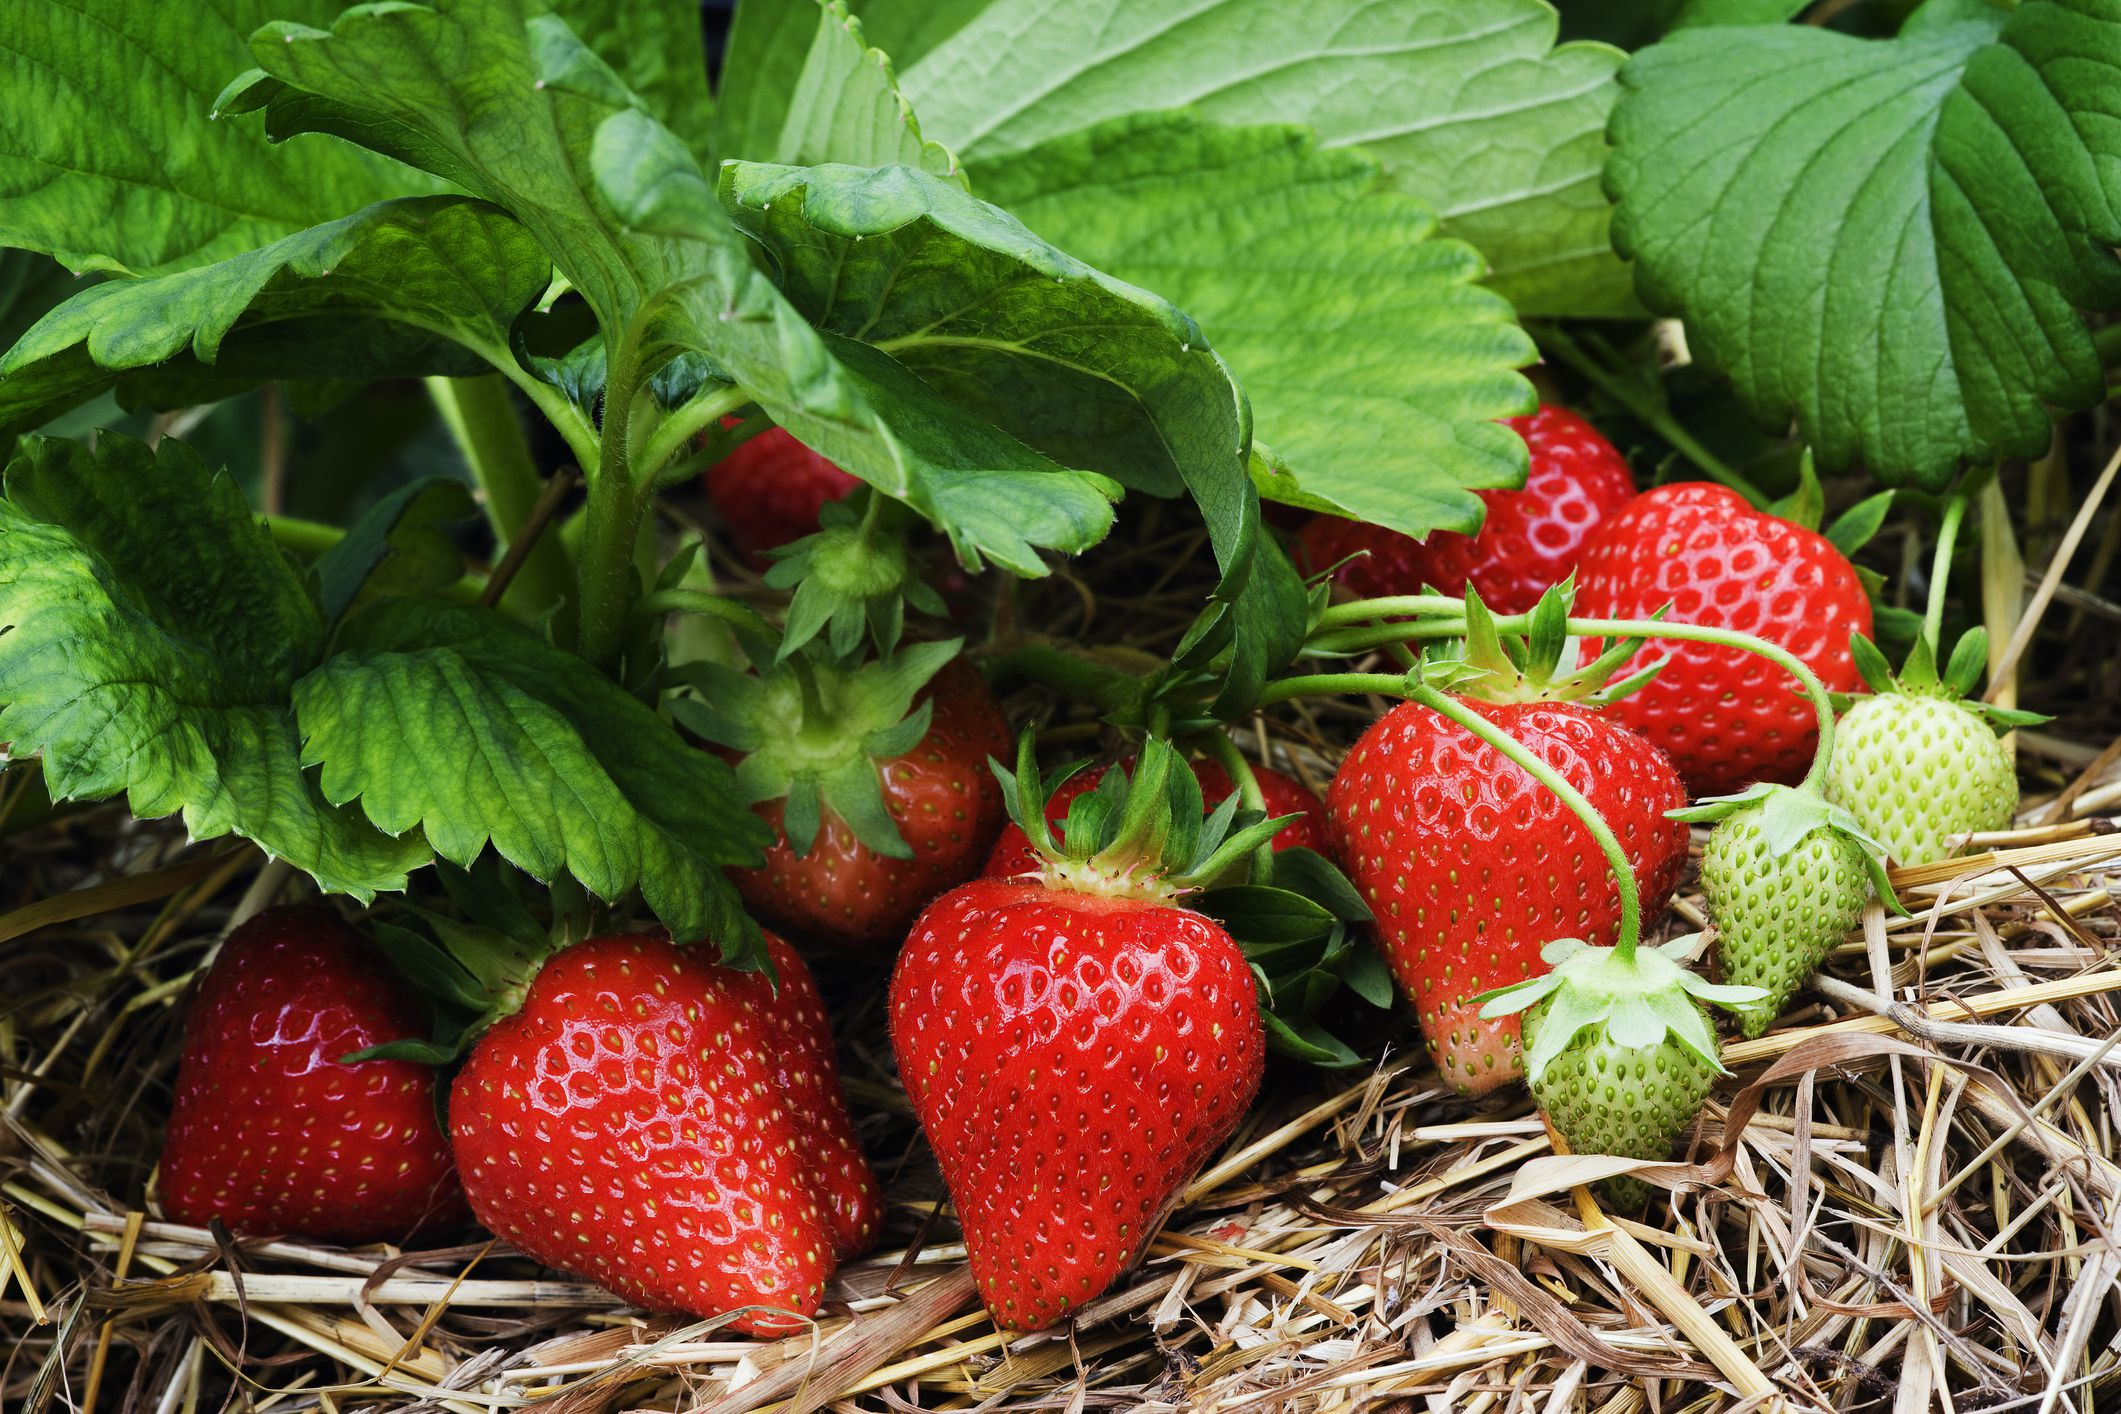 Best strawberries to grow in texas - Keep Your Strawberry Plants Productive With A Little Renovation